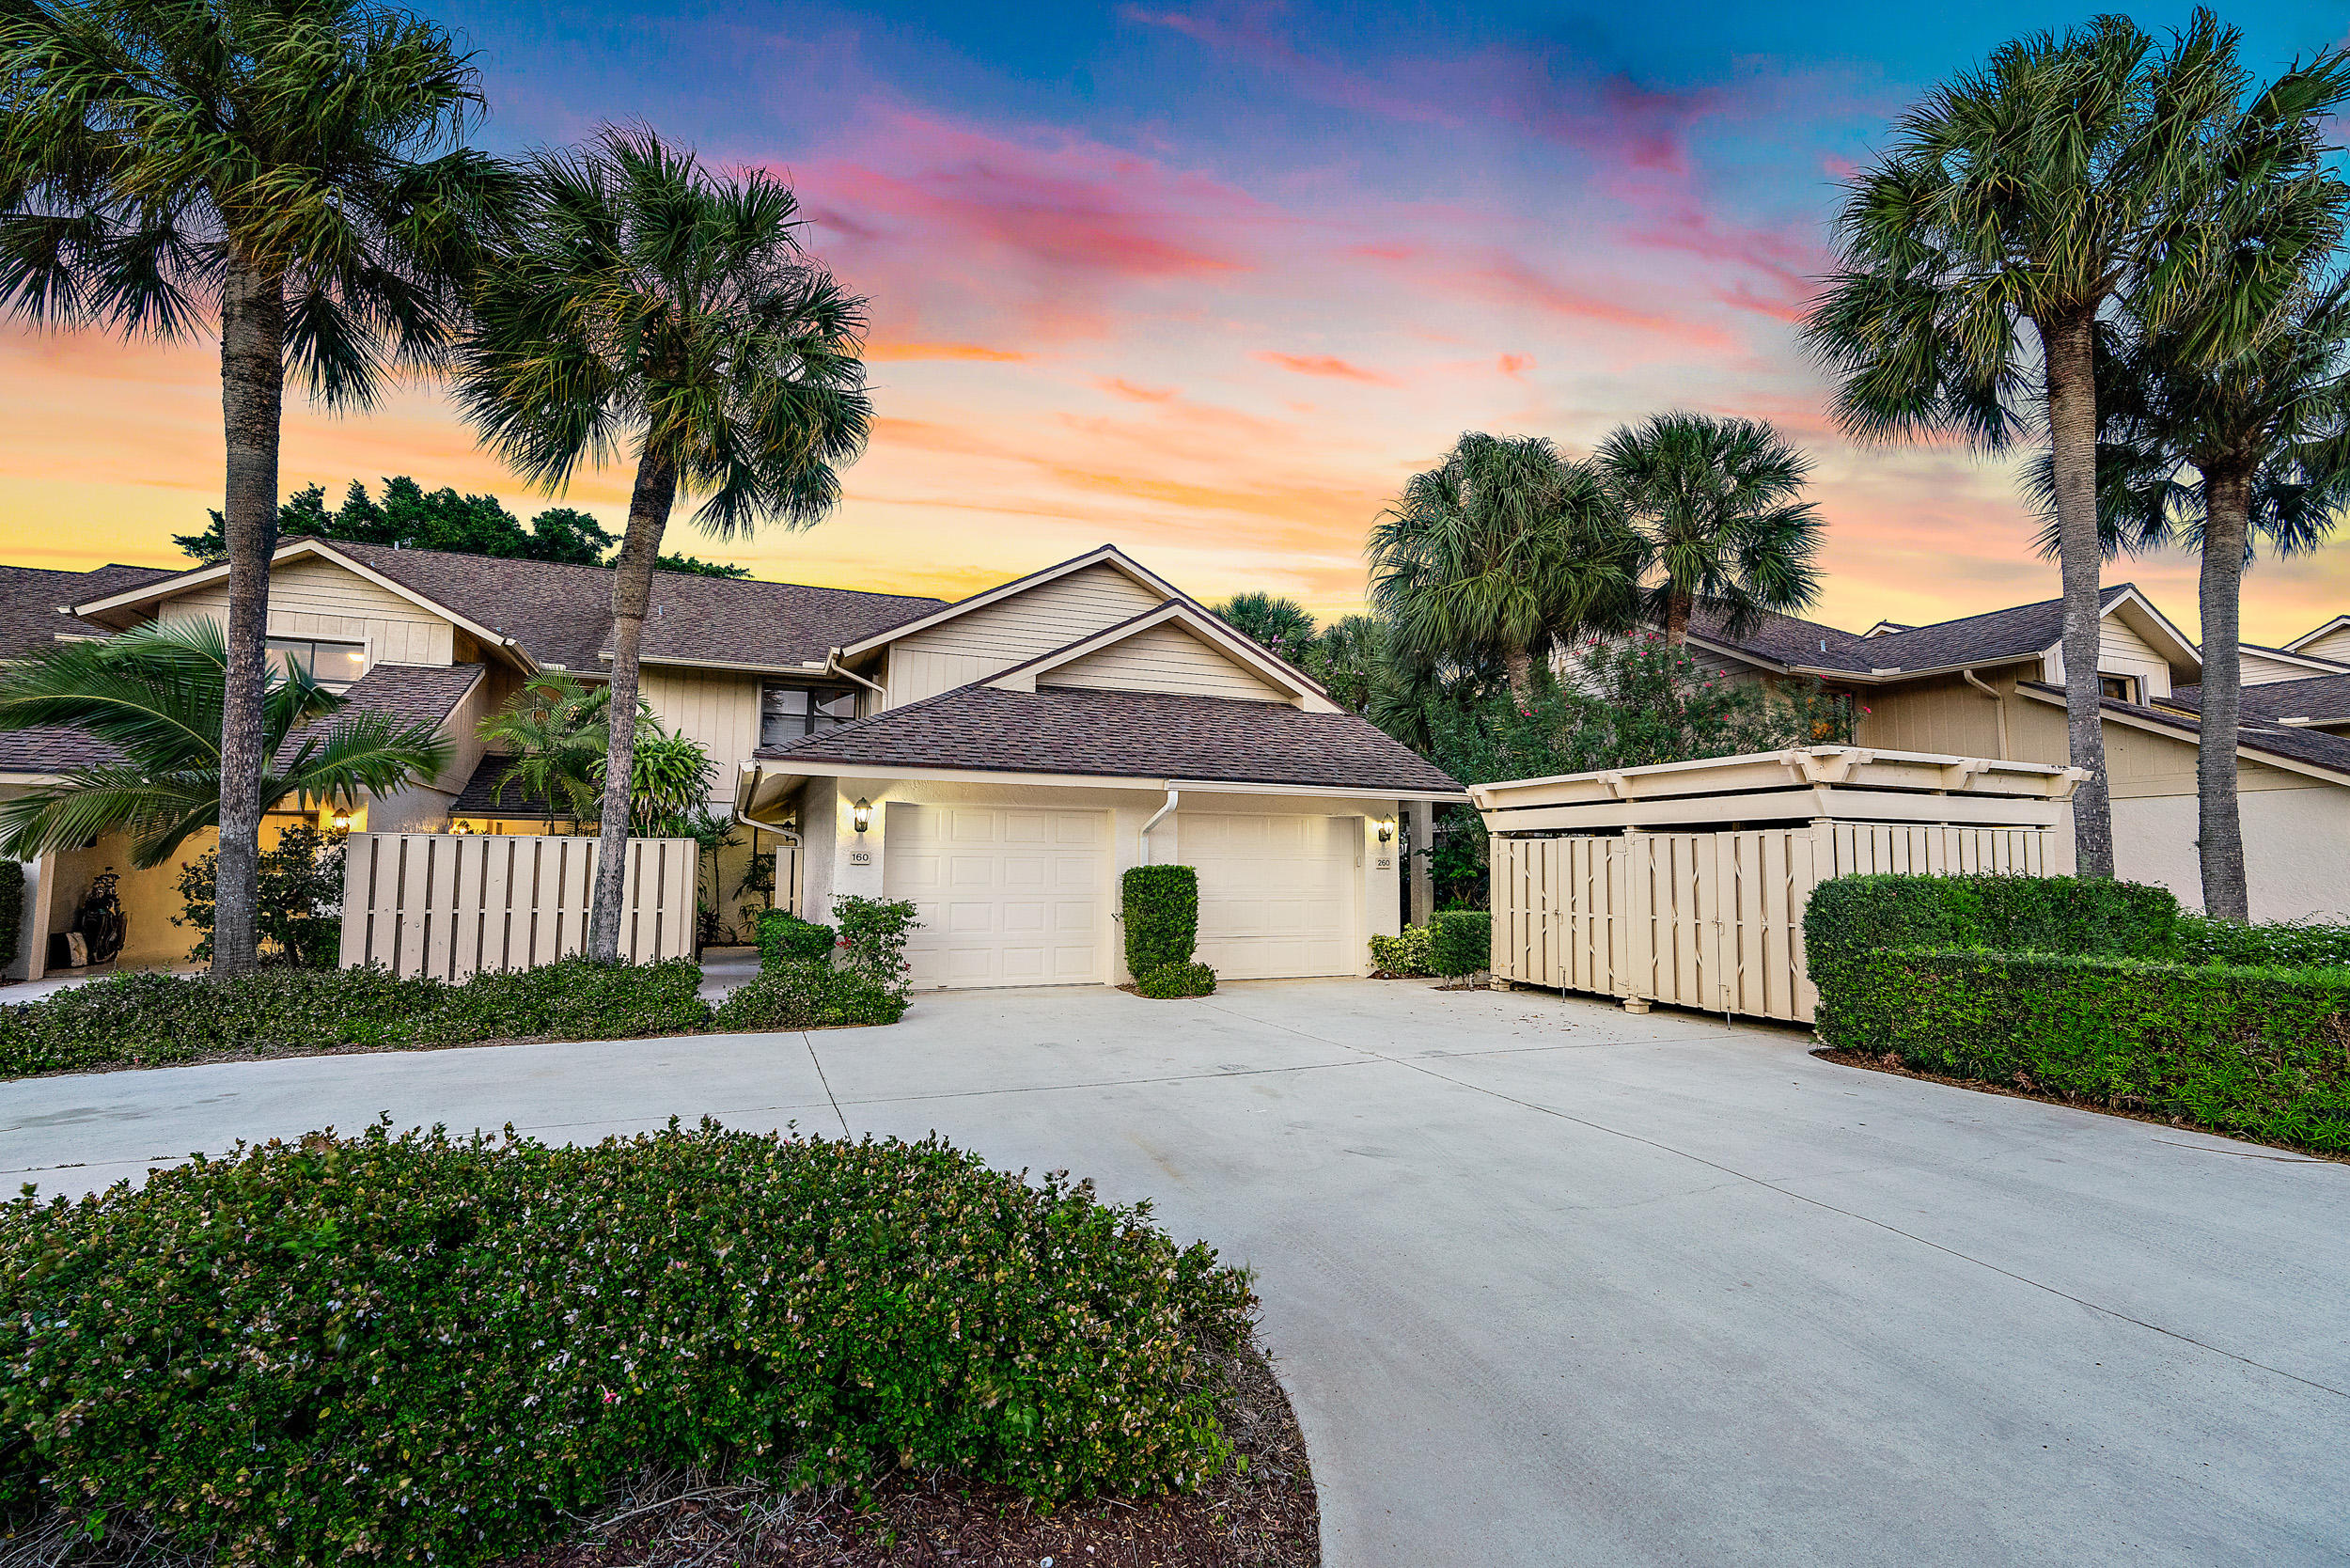 16942 Waterbend Drive 160, Jupiter, Florida 33477, 2 Bedrooms Bedrooms, ,2 BathroomsBathrooms,A,Townhouse,Waterbend,RX-10606545